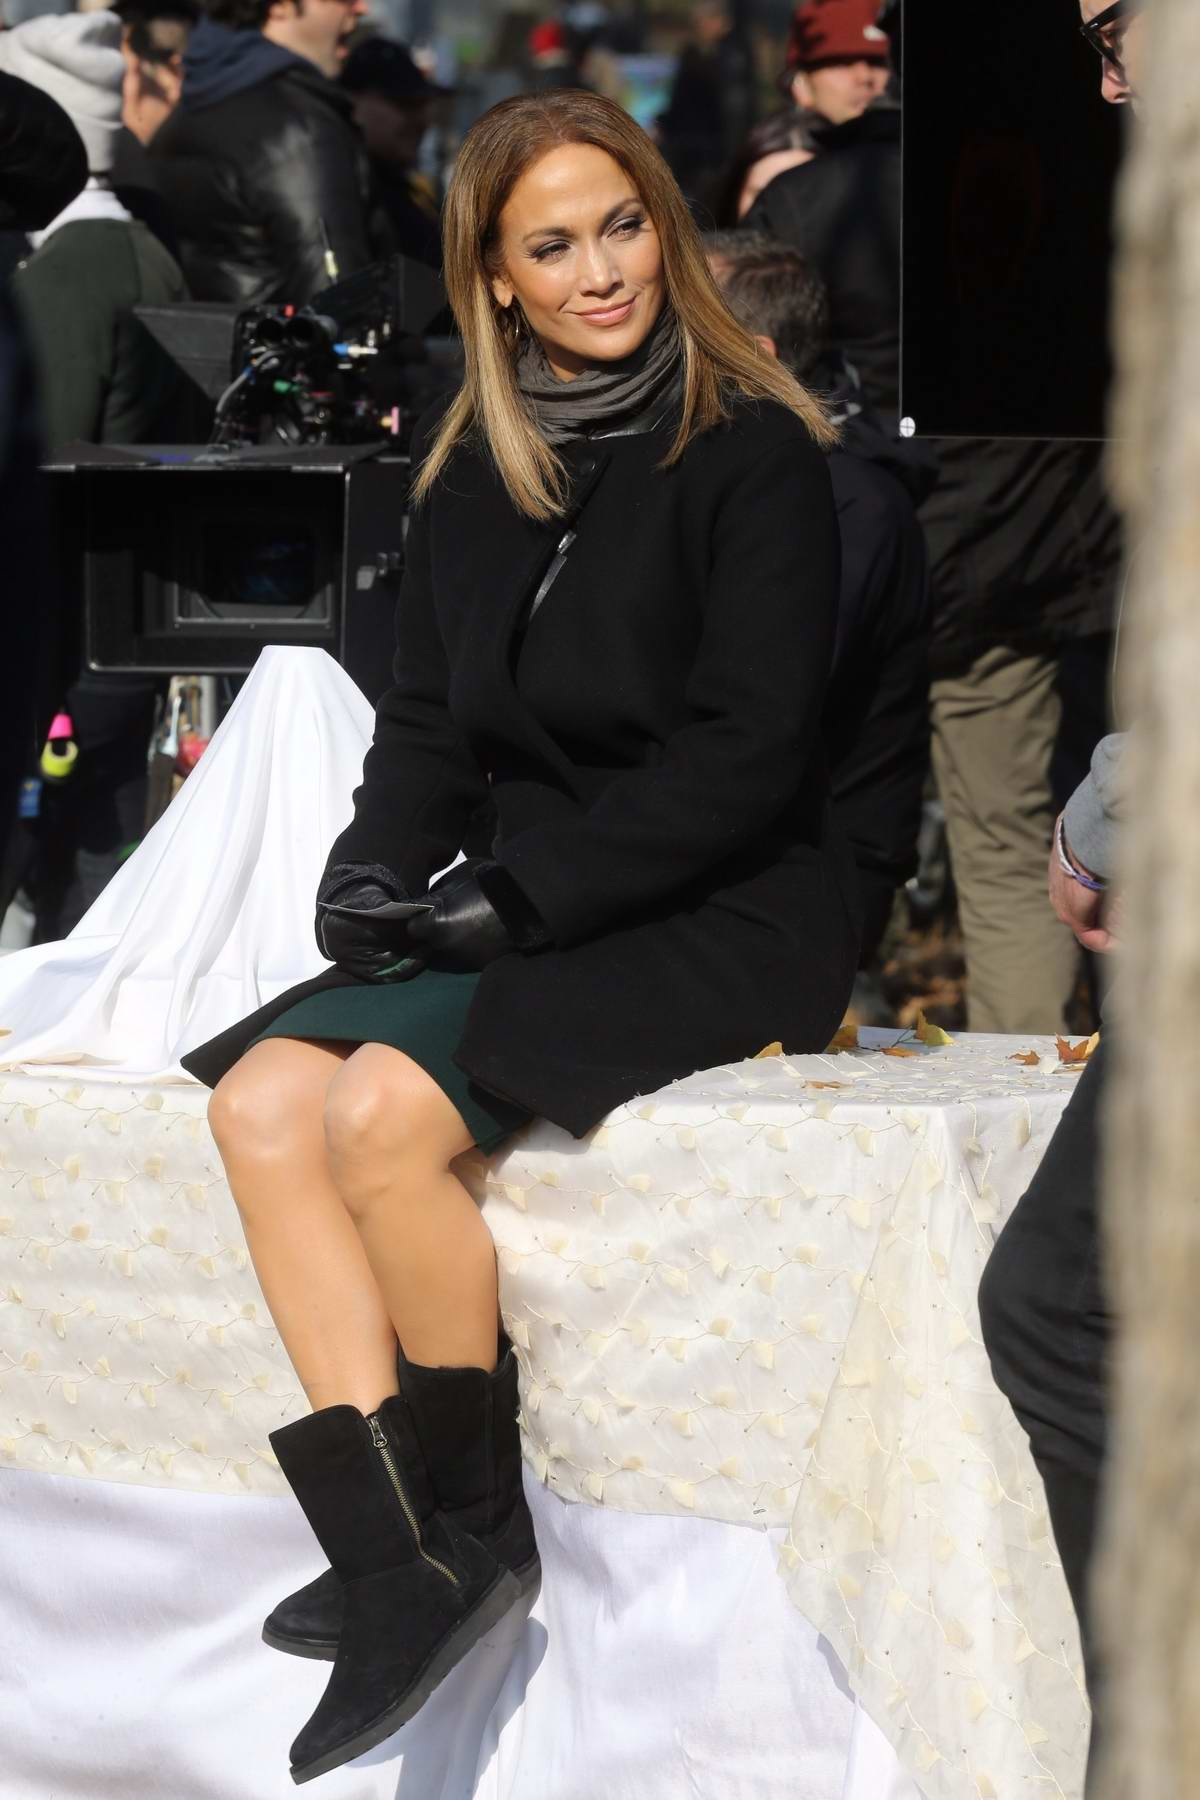 Jennifer Lopez relaxing in between takes while filming 'Second Act' in Central Park, New York City